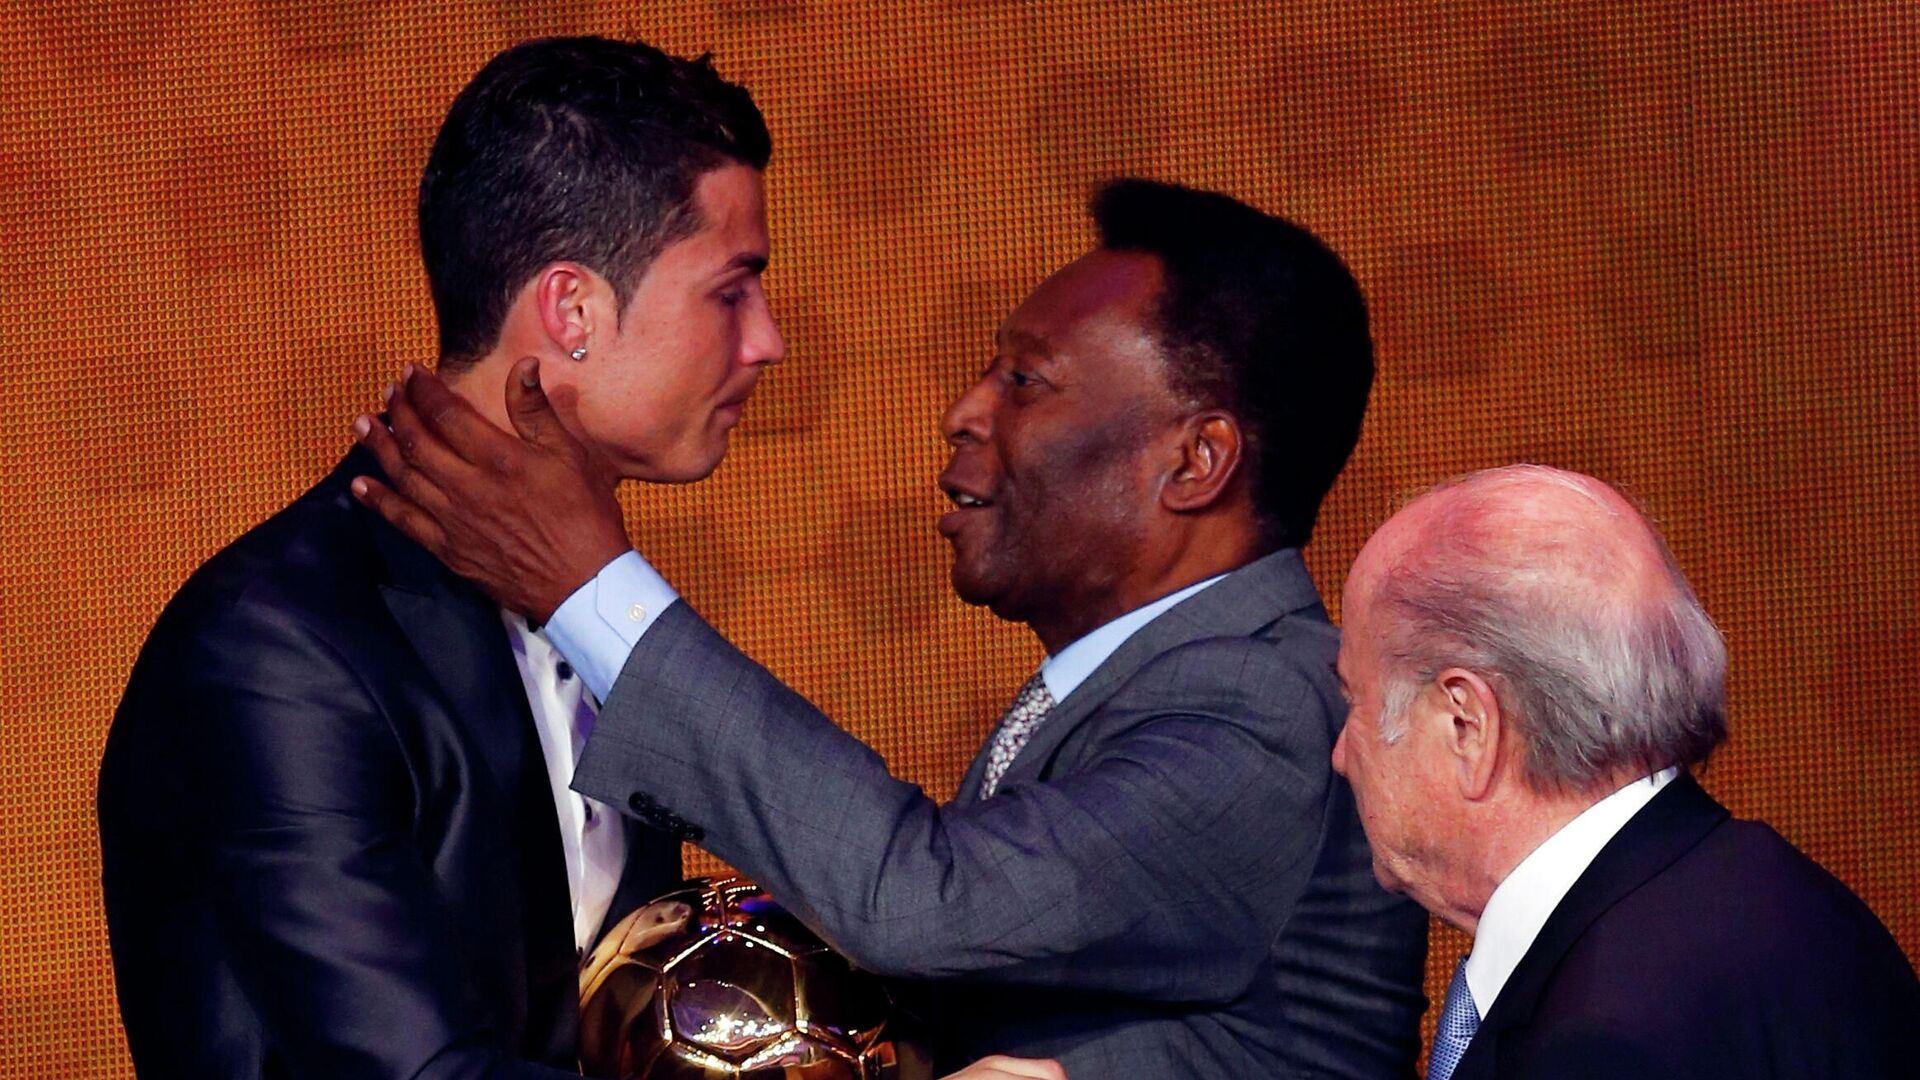 Portugal's Cristiano Ronaldo is congratulated by Pele after being awarded the FIFA Ballon d'Or 2013 in Zurich January 13, 2014 - Sputnik International, 1920, 13.10.2021